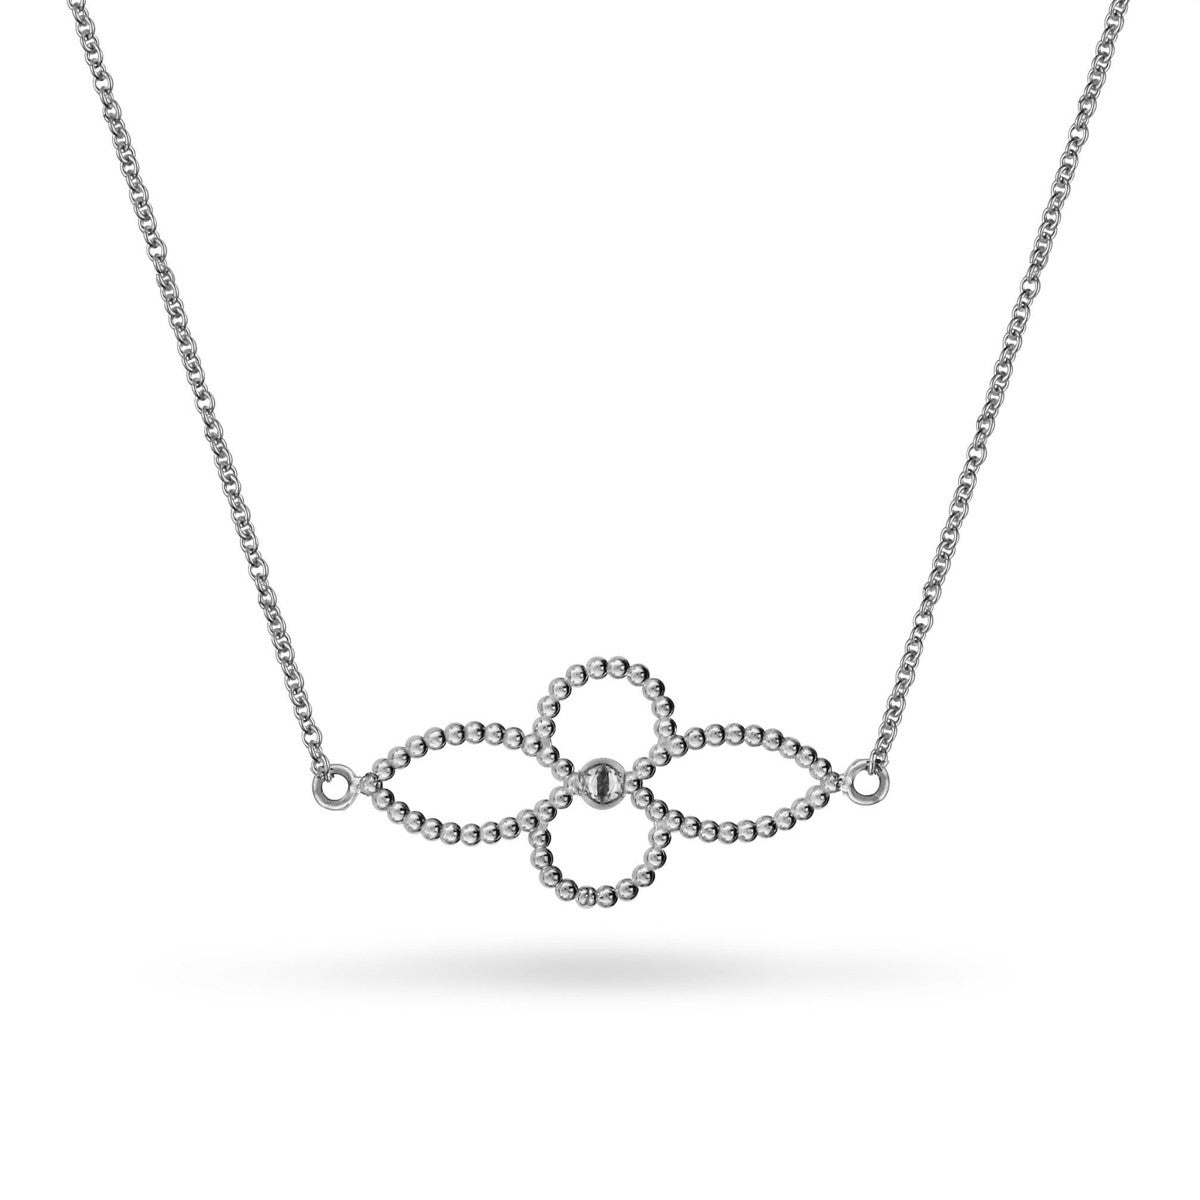 4 Petal Flower Necklace